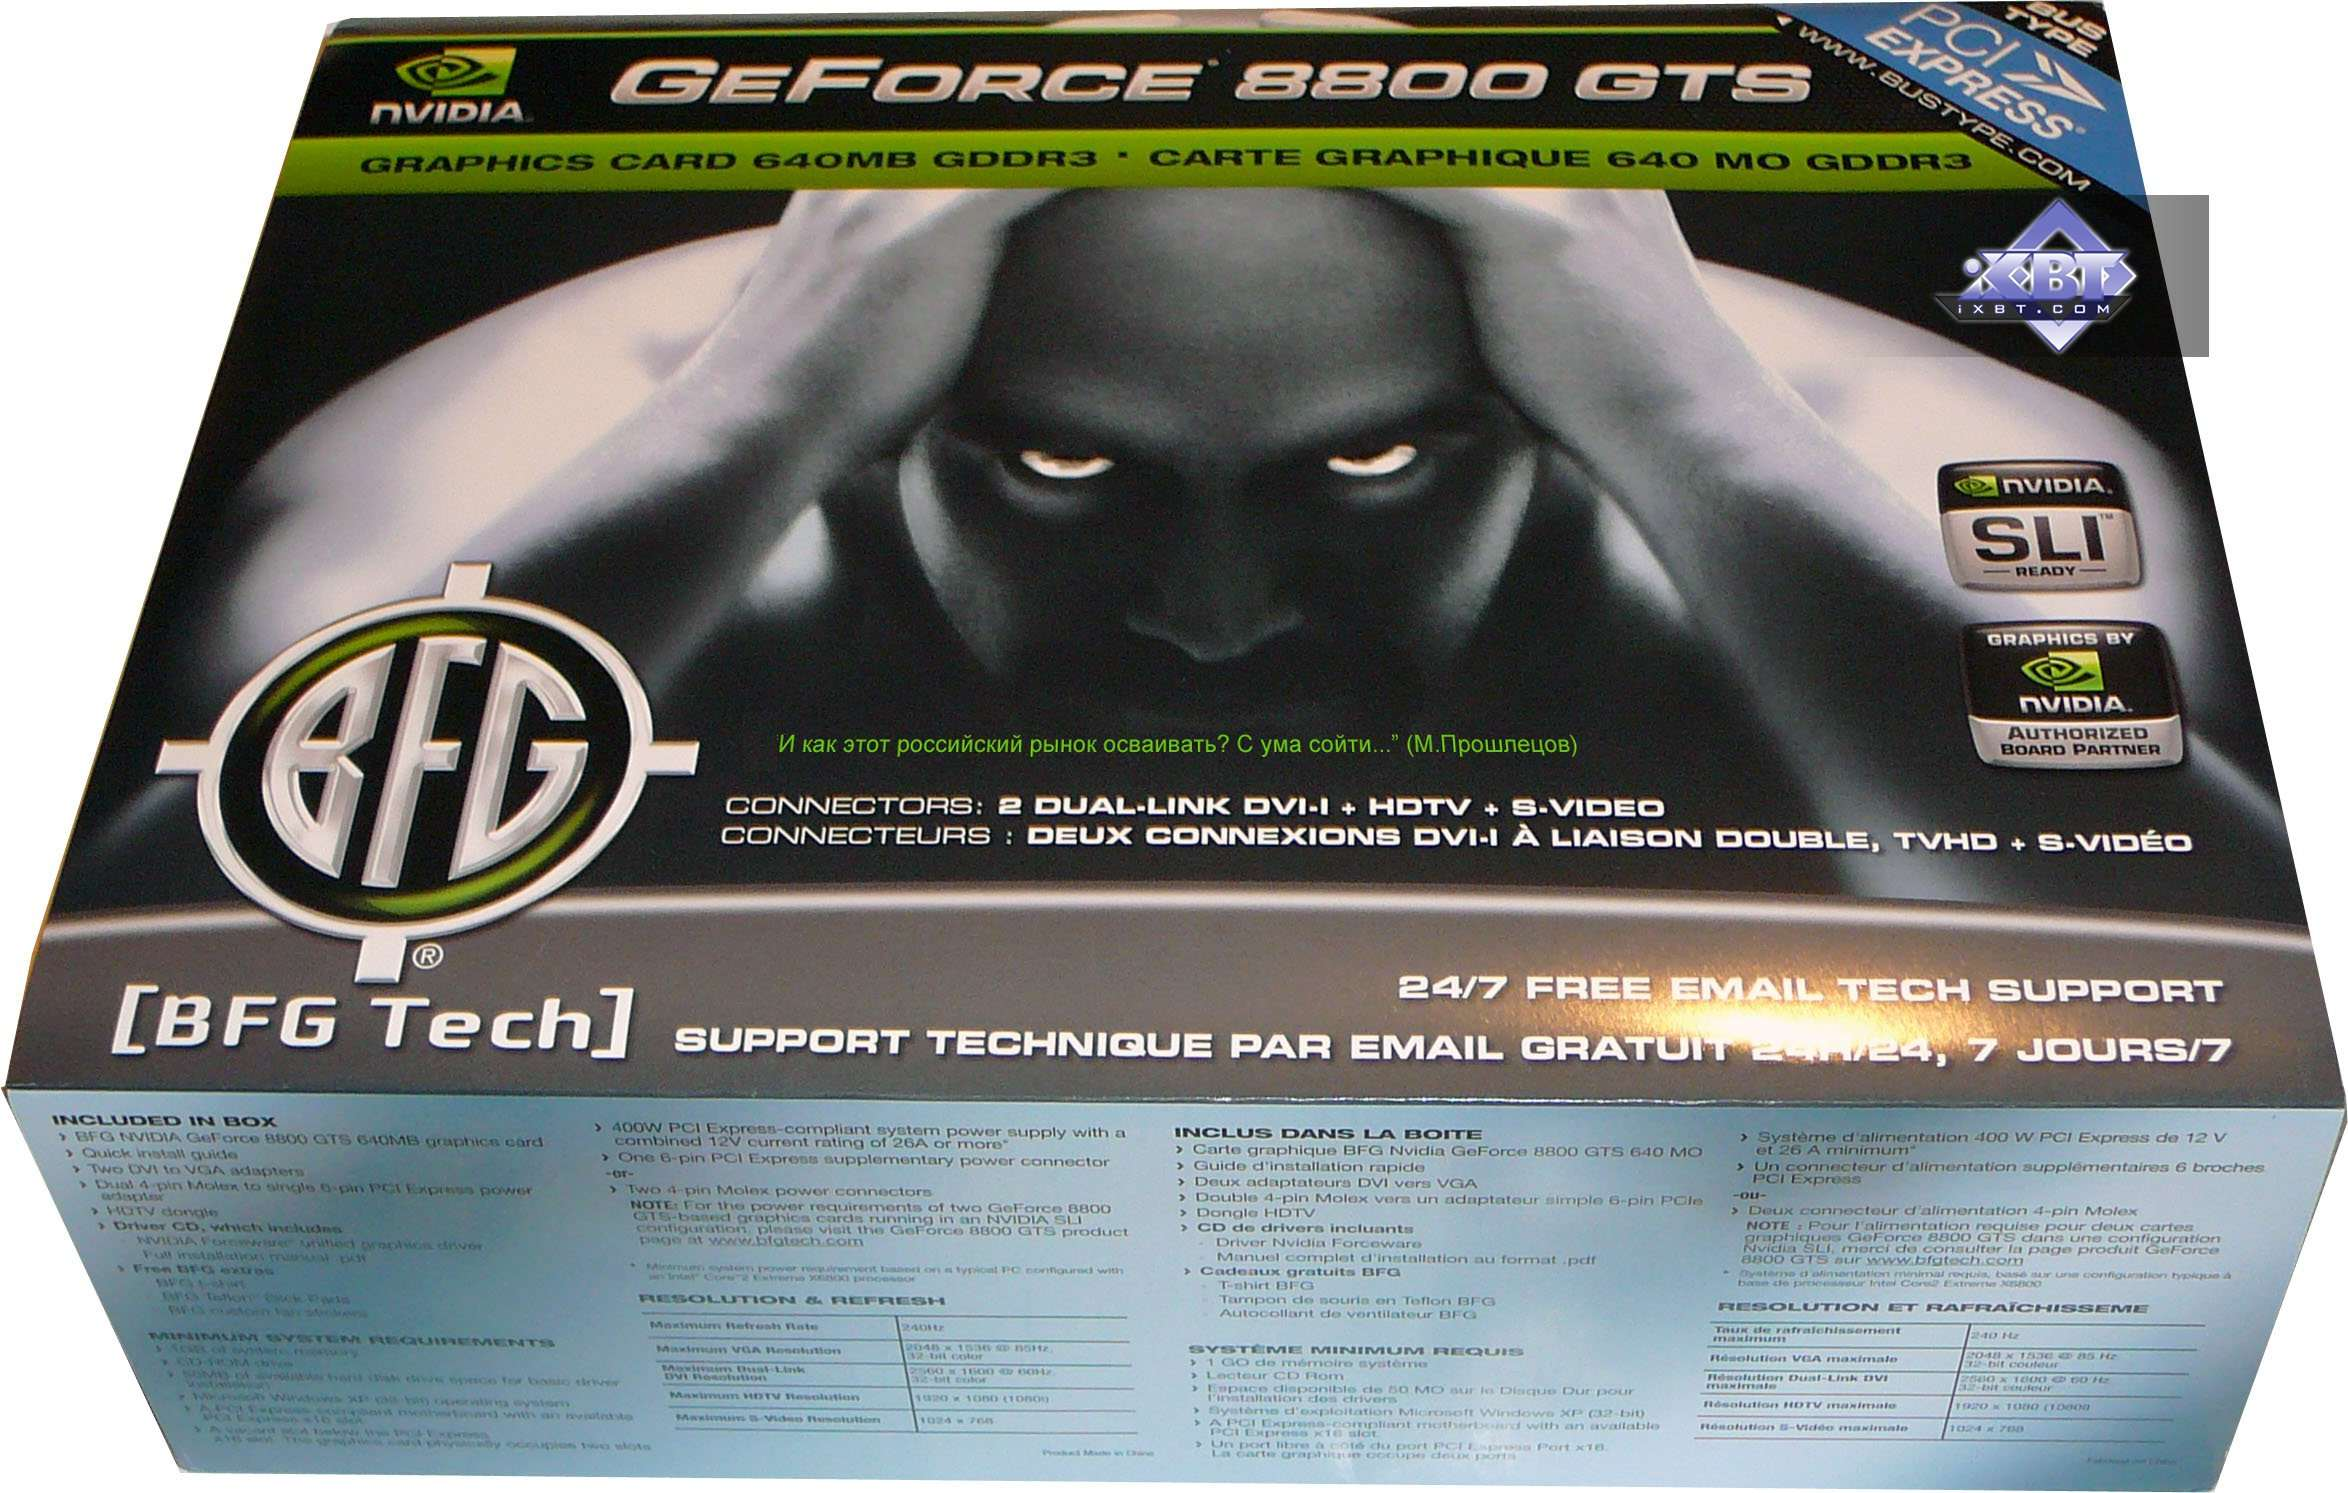 All Components Are Thoroughly Arranged Into Sections Along With An Antistatic Envelope The Video Card Is Put Inside Soft Package That Protects It From Any